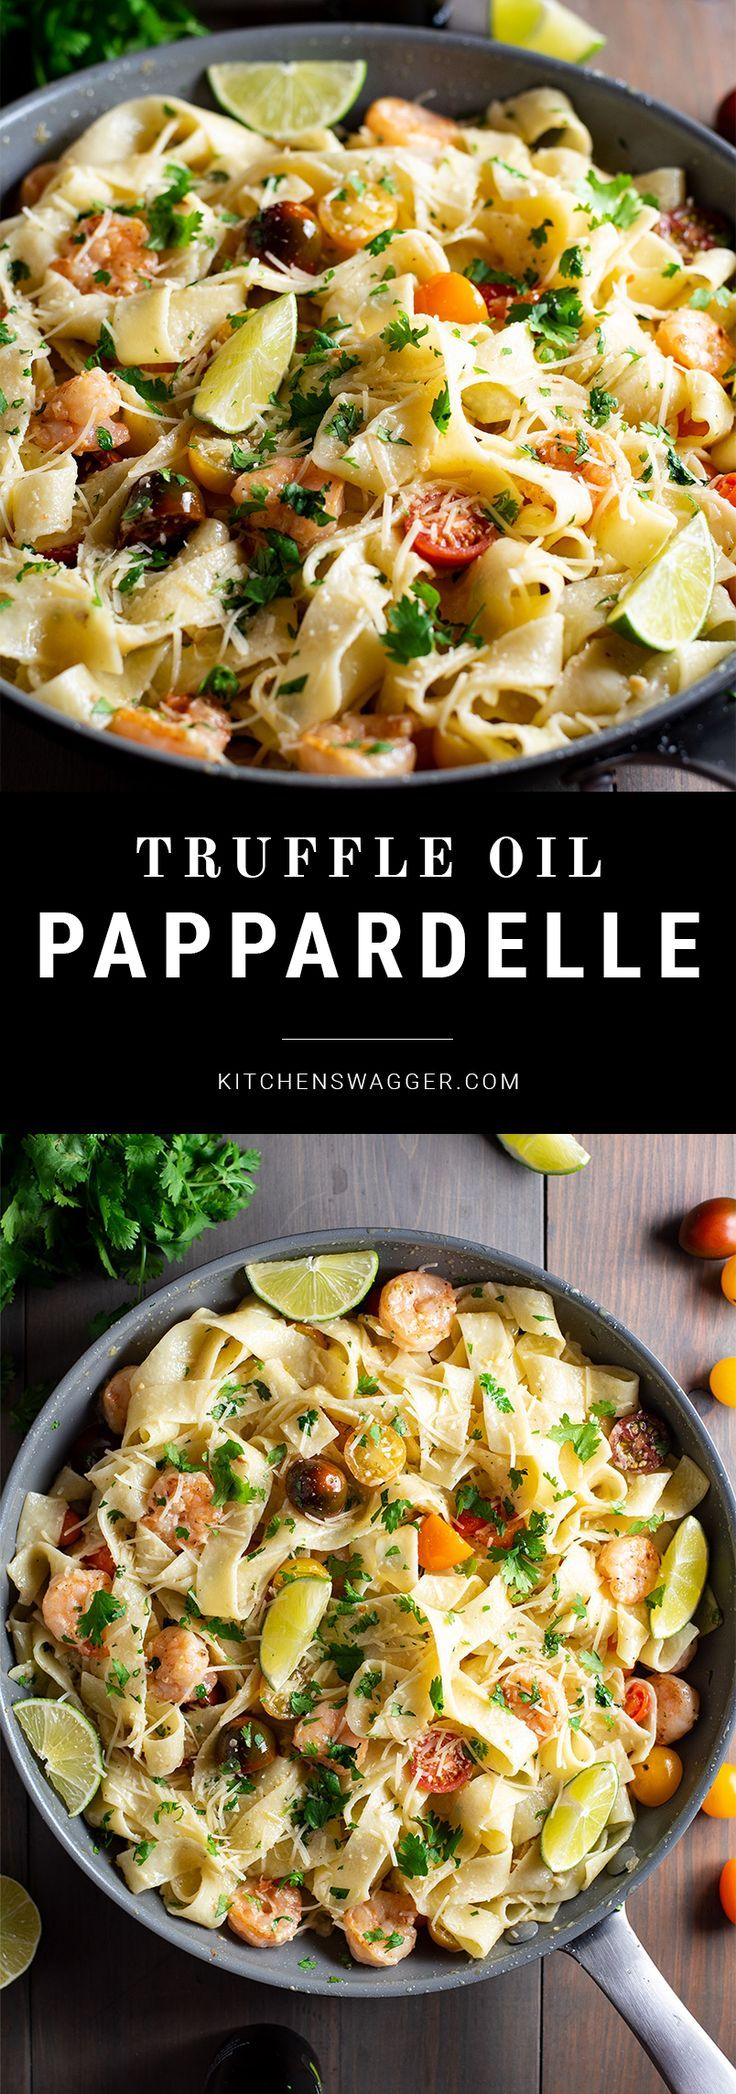 Pappardelle Pasta With Creamy Truffle Oil And Shrimp Recipe Recipe Pappardelle Pasta Pappardelle Recipe Pasta Dishes